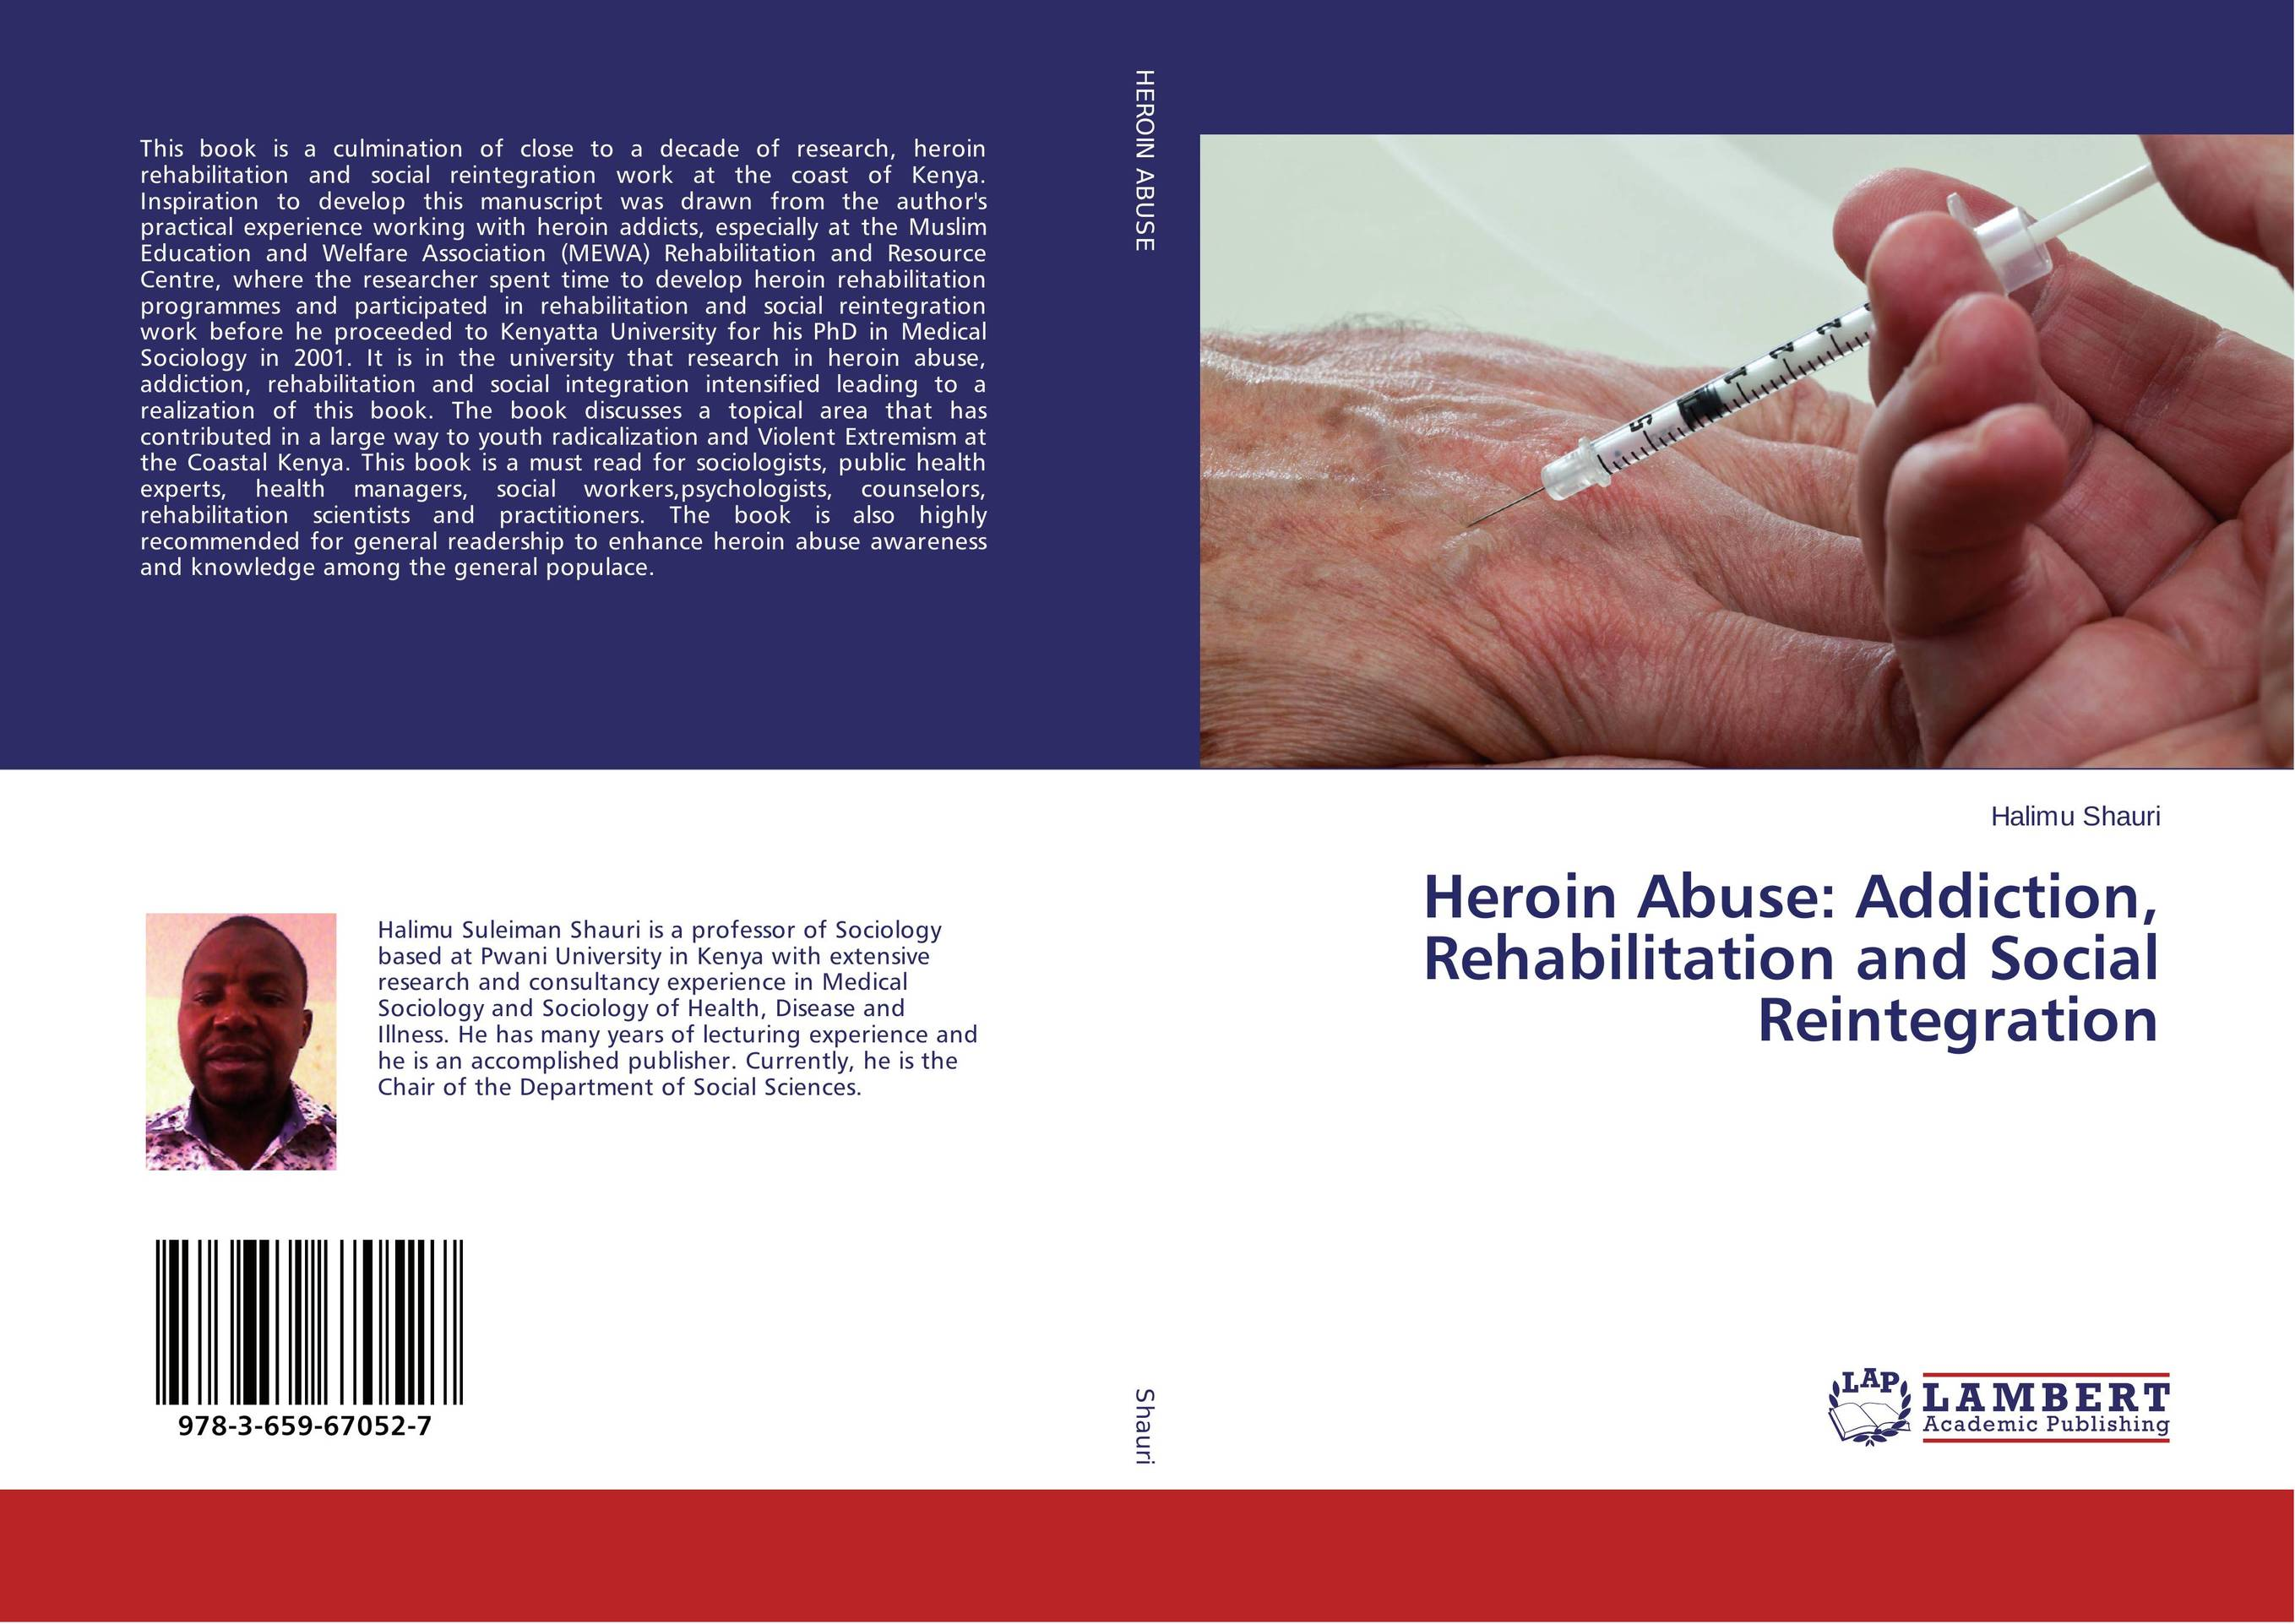 Heroin Abuse: Addiction, Rehabilitation and Social Reintegration heroin organized crime and the making of modern turkey